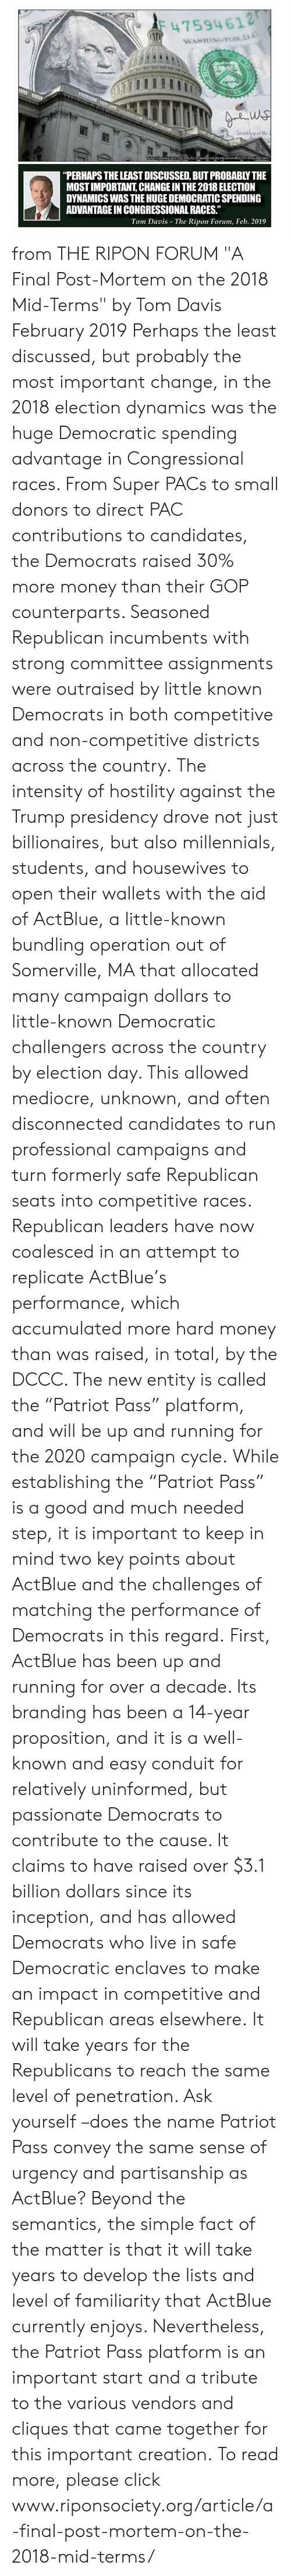 """Click, Inception, and Mediocre: 47594 612  WASHINGTON D  um  aof the  rvarticle inal-post-mortem-on-the-2018-mid-term  """"PERHAPS THE LEAST DISCUSSED, BUT PROBABLY THE  MOST IMPORTANT, CHANGE IN THE 2018 ELECTION  DYNAMICS WAS THE HUGE DEMOCRATIC SPENDING  ADVANTAGE IN CONGRESSIONAL RACES""""  Tom Davis - The Ripon Forum, Feb. 2019 from THE RIPON FORUM """"A Final Post-Mortem on the 2018 Mid-Terms"""" by Tom Davis February 2019  Perhaps the least discussed, but probably the most important change, in the 2018 election dynamics was the huge Democratic spending advantage in Congressional races. From Super PACs to small donors to direct PAC contributions to candidates, the Democrats raised 30% more money than their GOP counterparts. Seasoned Republican incumbents with strong committee assignments were outraised by little known Democrats in both competitive and non-competitive districts across the country.  The intensity of hostility against the Trump presidency drove not just billionaires, but also millennials, students, and housewives to open their wallets with the aid of ActBlue, a little-known bundling operation out of Somerville, MA that allocated many campaign dollars to little-known Democratic challengers across the country by election day. This allowed mediocre, unknown, and often disconnected candidates to run professional campaigns and turn formerly safe Republican seats into competitive races.  Republican leaders have now coalesced in an attempt to replicate ActBlue's performance, which accumulated more hard money than was raised, in total, by the DCCC. The new entity is called the """"Patriot Pass"""" platform, and will be up and running for the 2020 campaign cycle.  While establishing the """"Patriot Pass"""" is a good and much needed step, it is important to keep in mind two key points about ActBlue and the challenges of matching the performance of Democrats in this regard.  First, ActBlue has been up and running for over a decade. Its branding has been a 14-year proposition, and"""